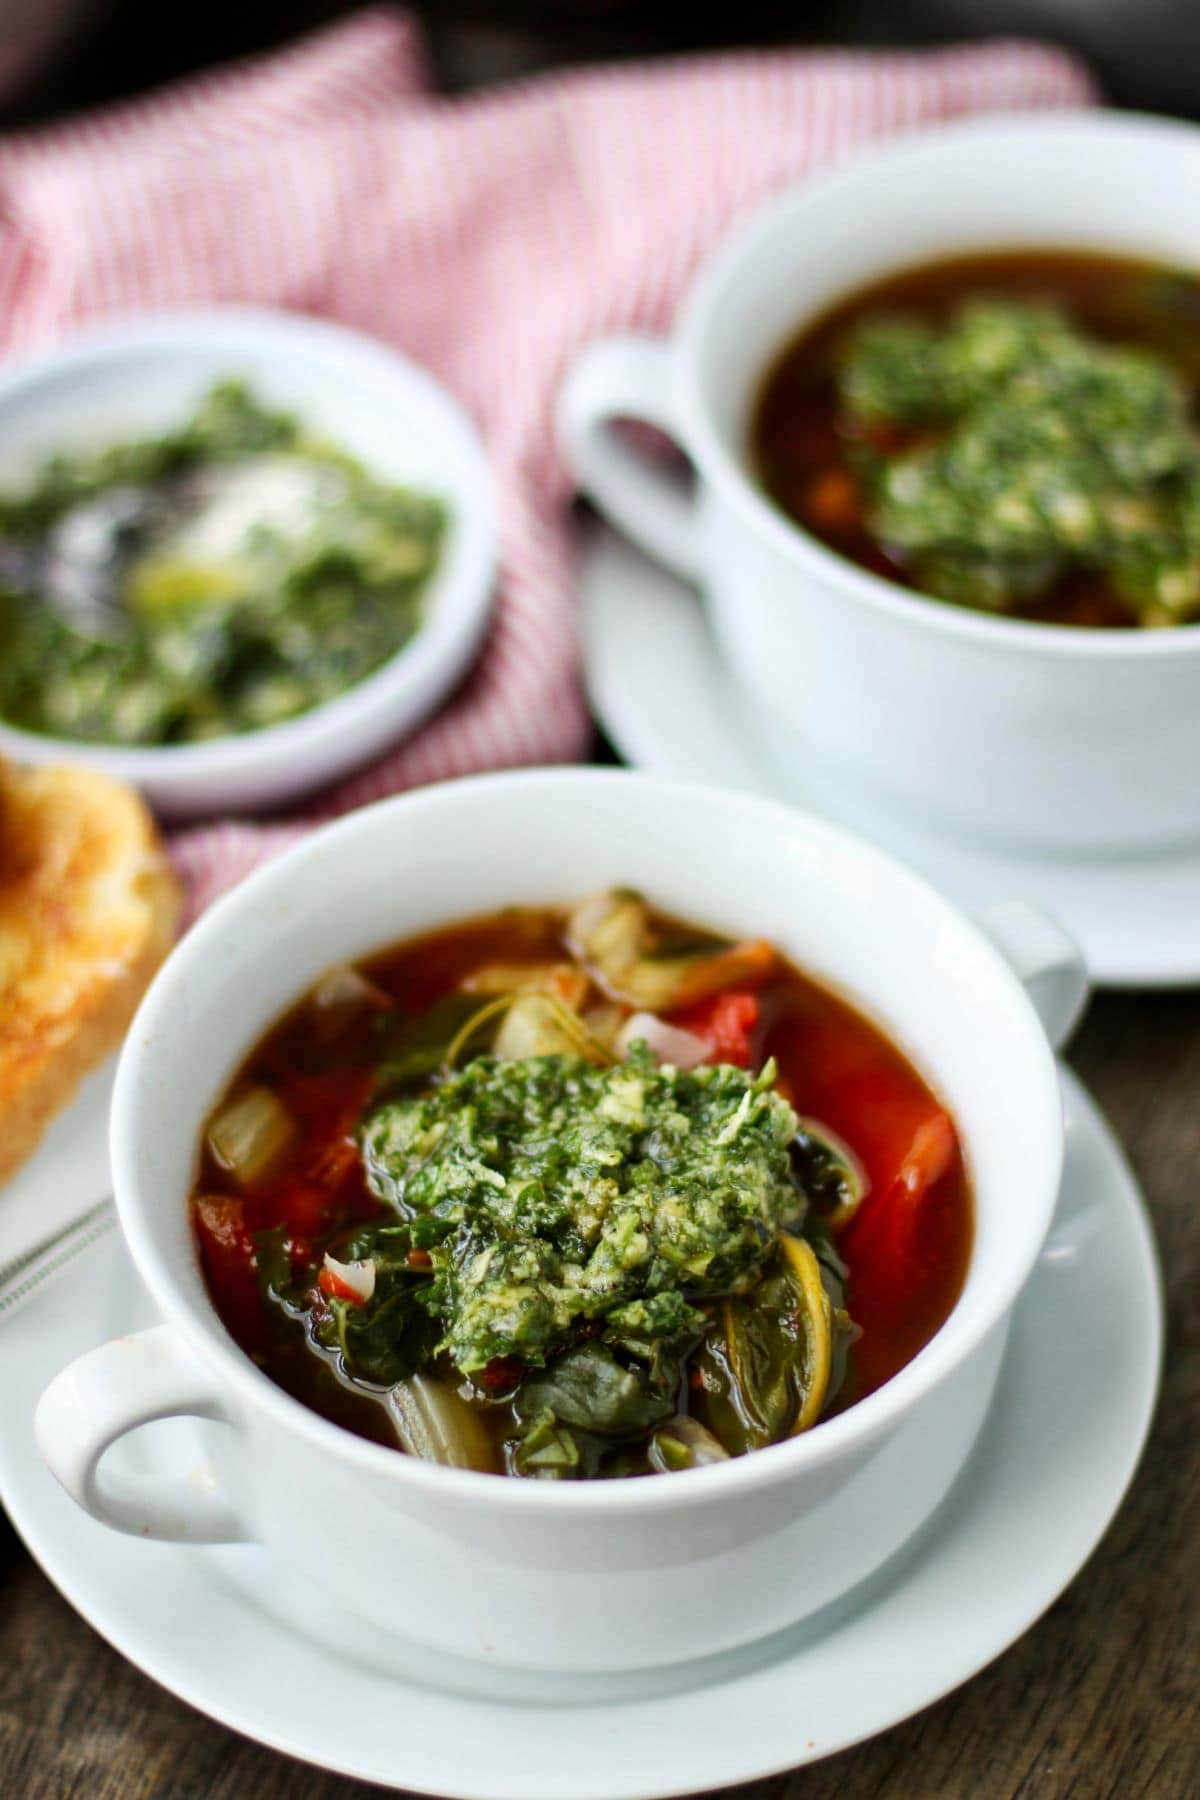 Swiss chard soup with pesto on top.